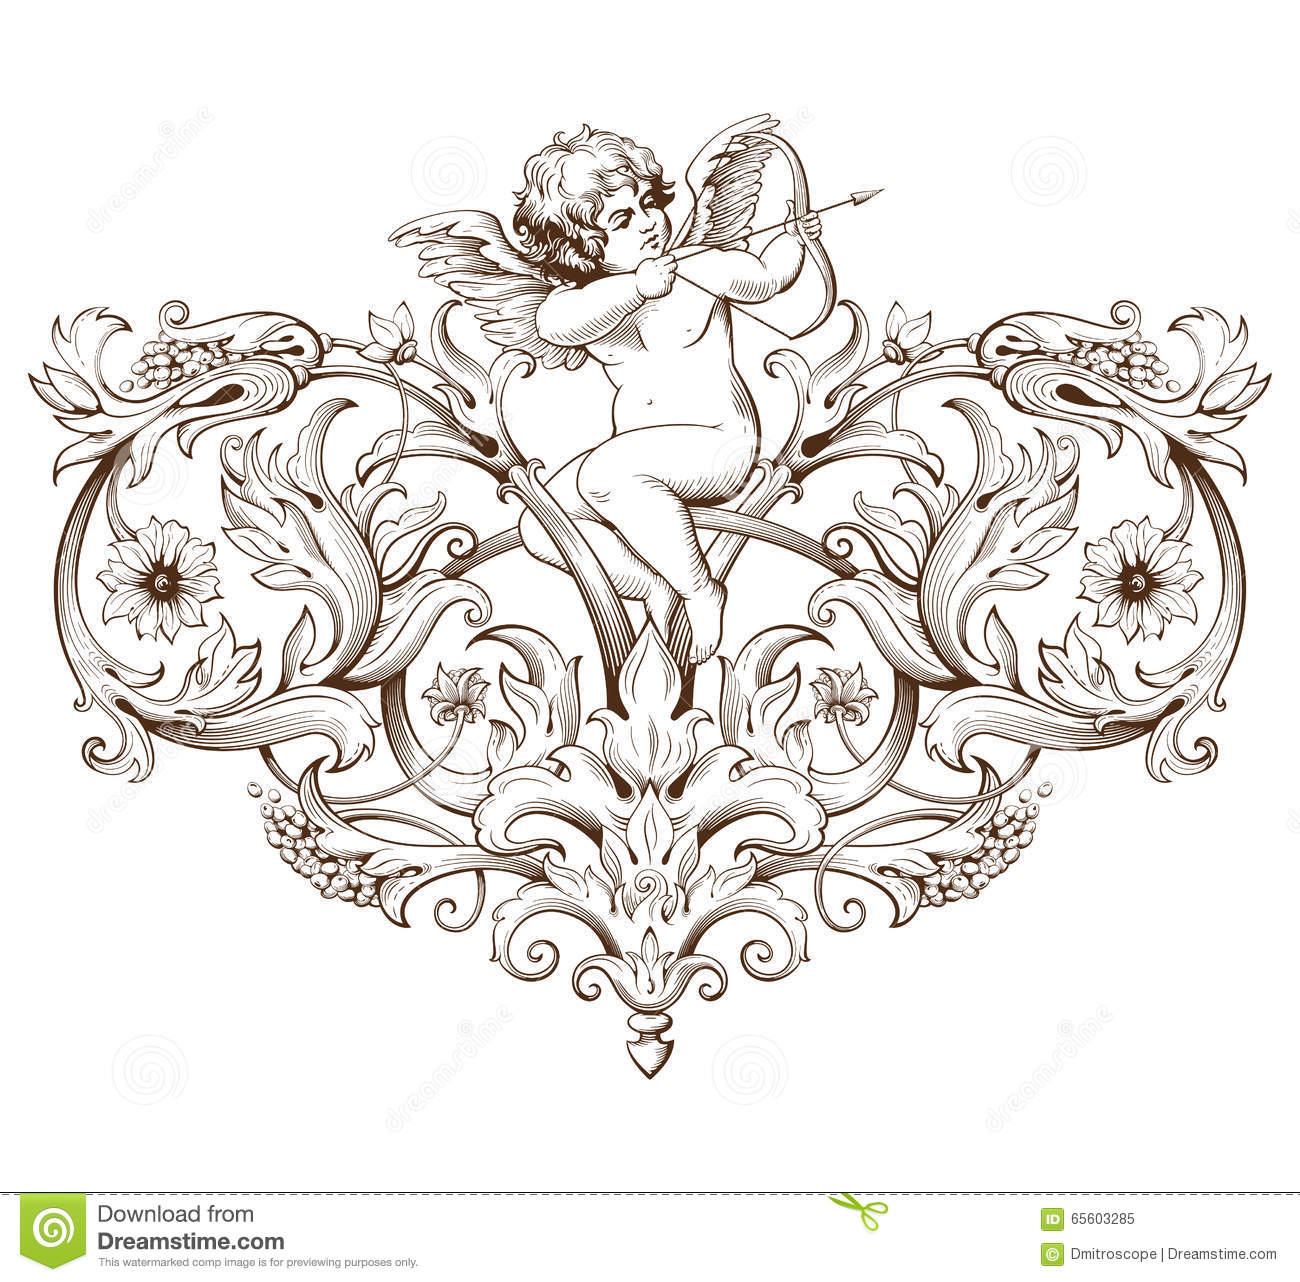 Vintage decorative element engraving with baroque ornament for Baroque design elements